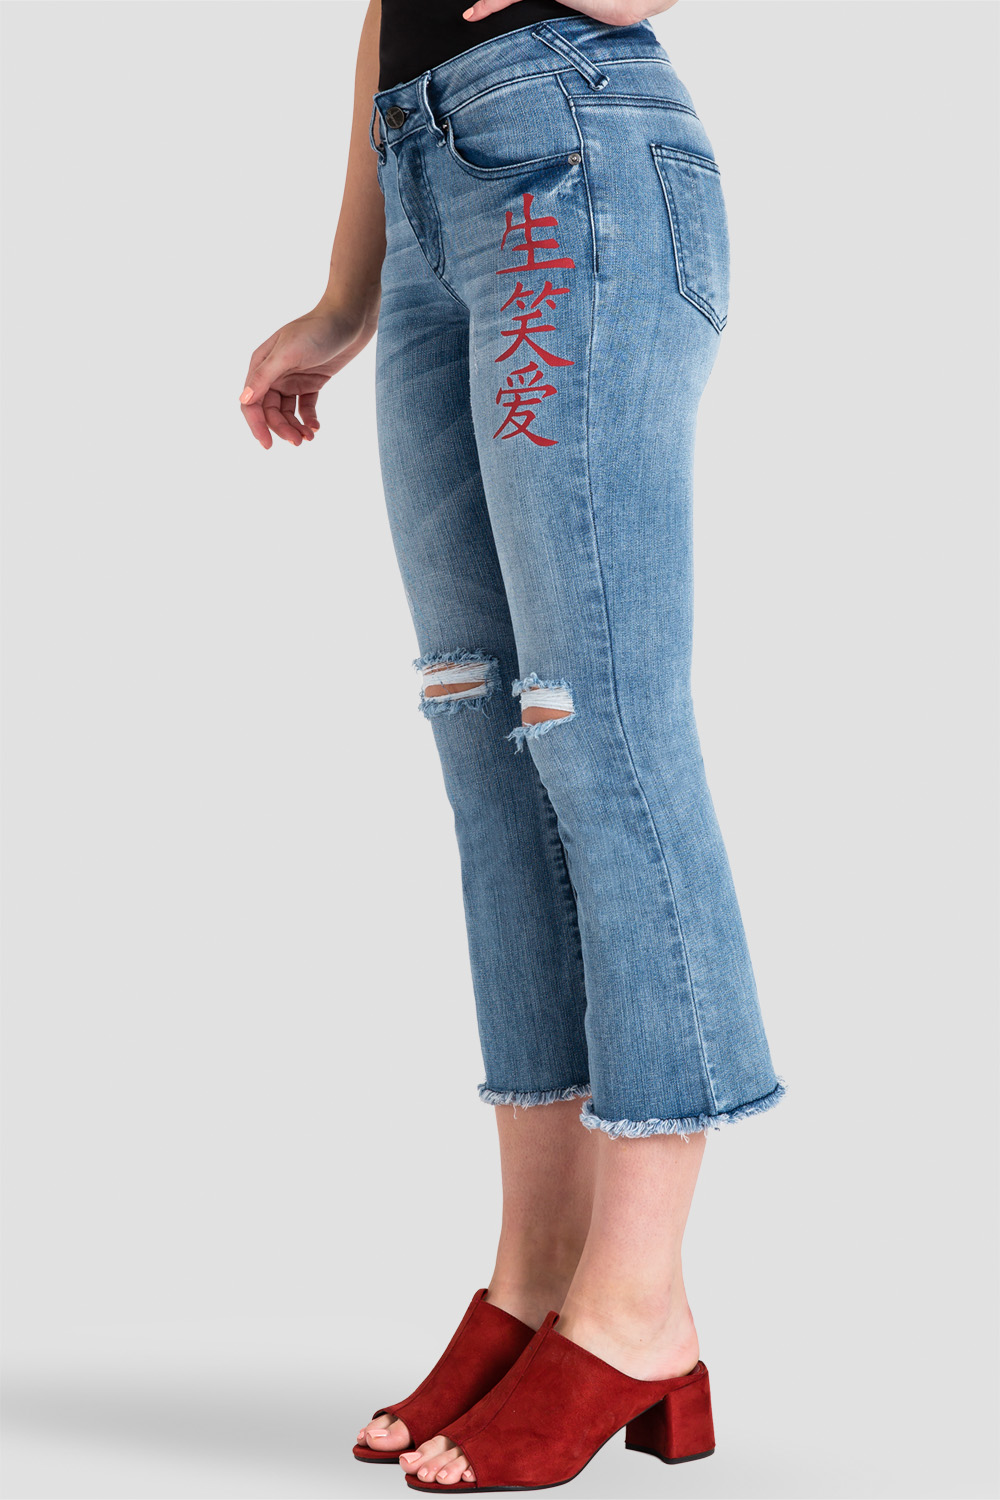 Jamie Chinese Character Women's Distressed Cropped Flare Jeans